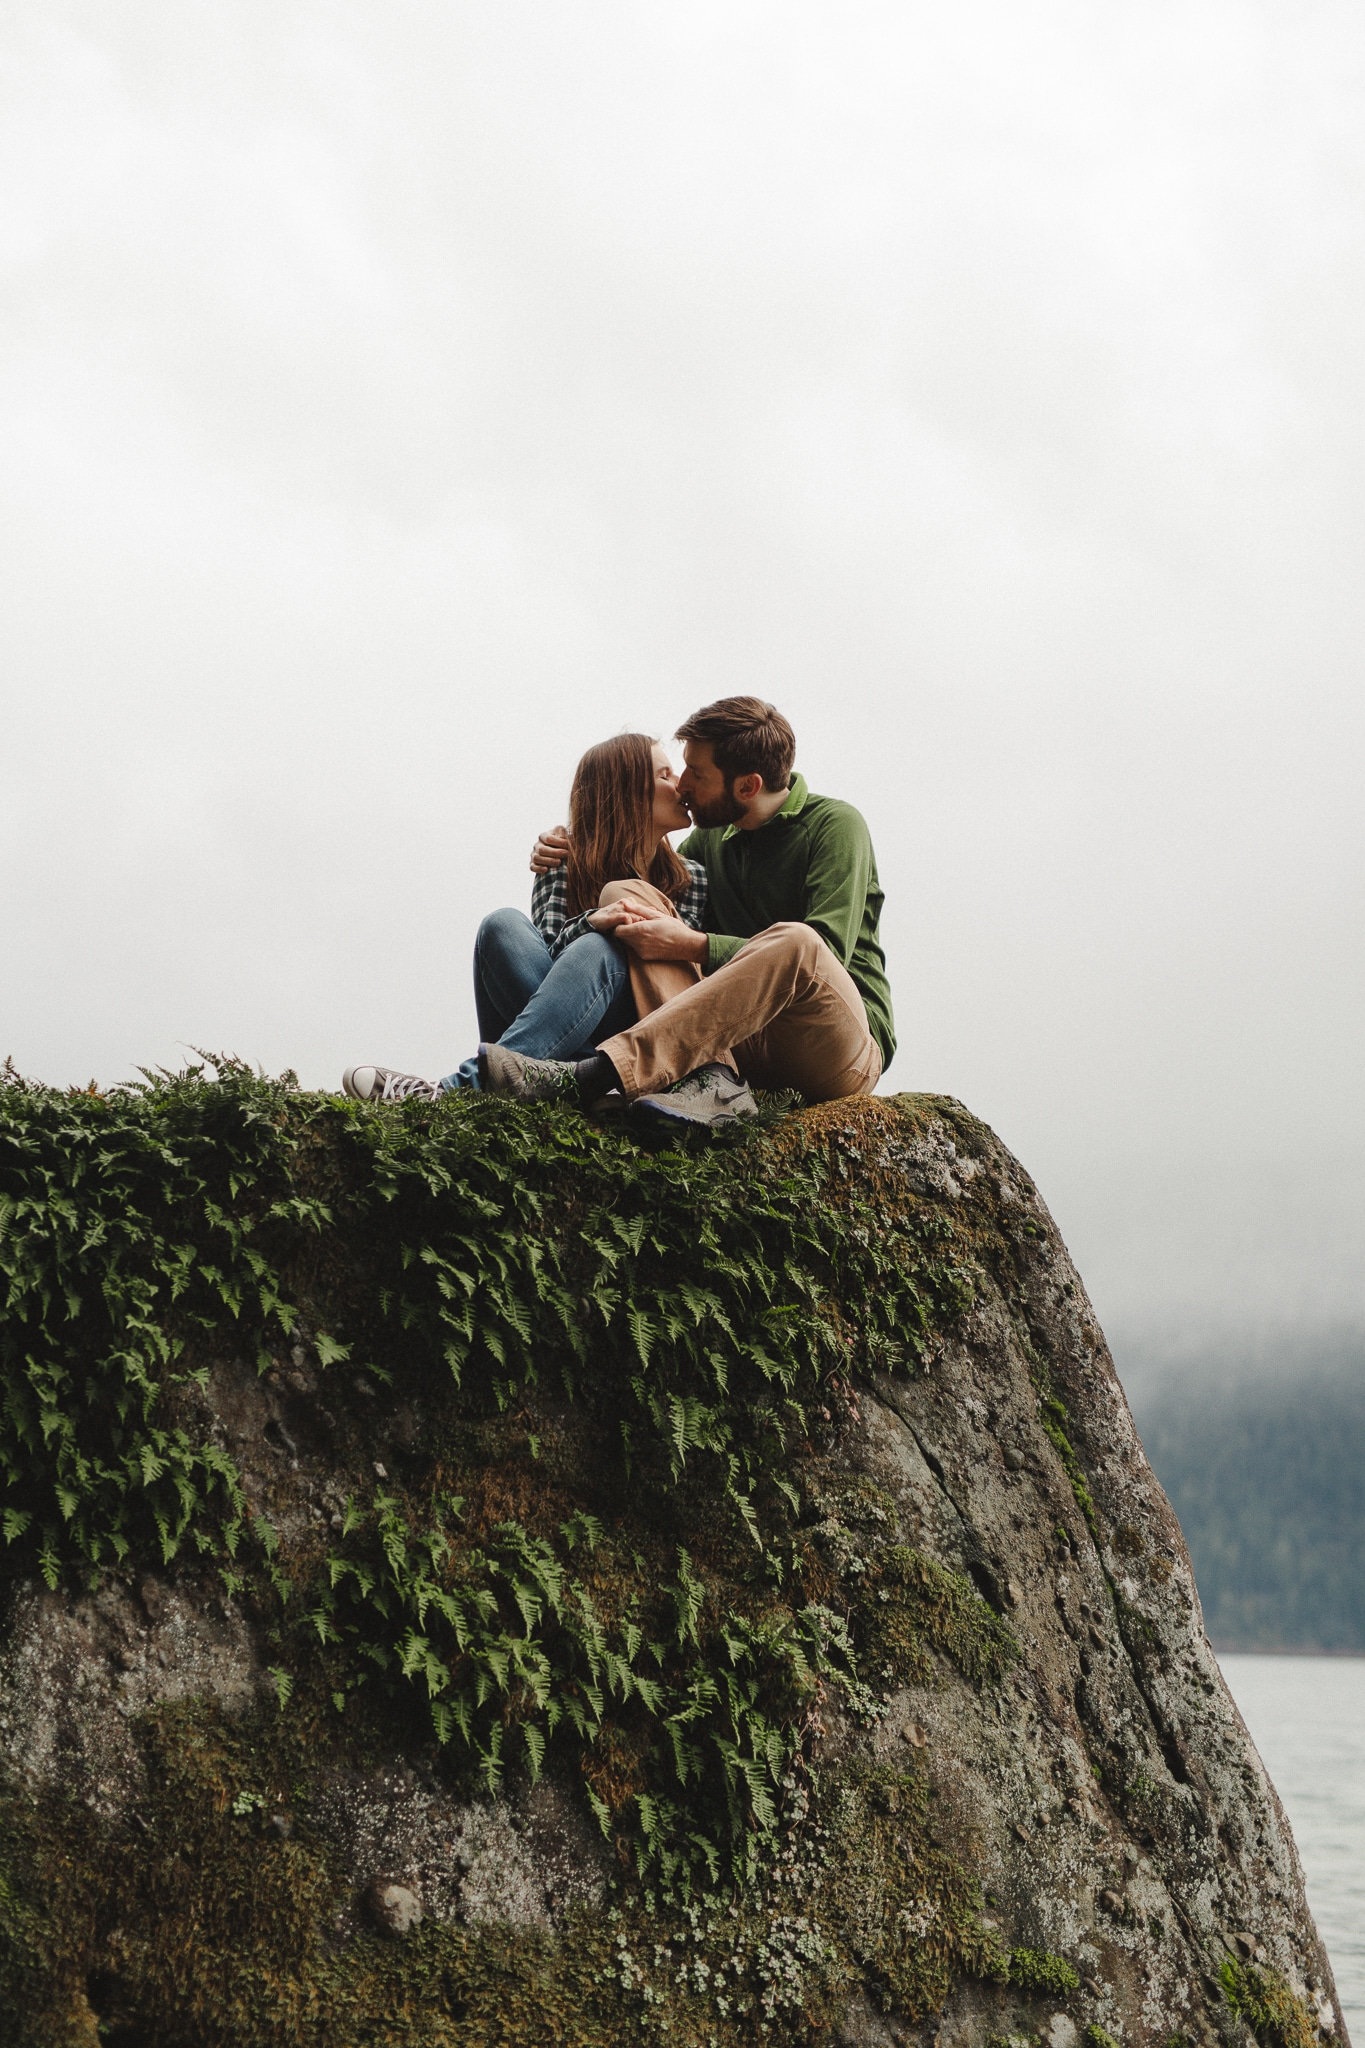 Olympic Peninsula Lake Crescent Engagement Session